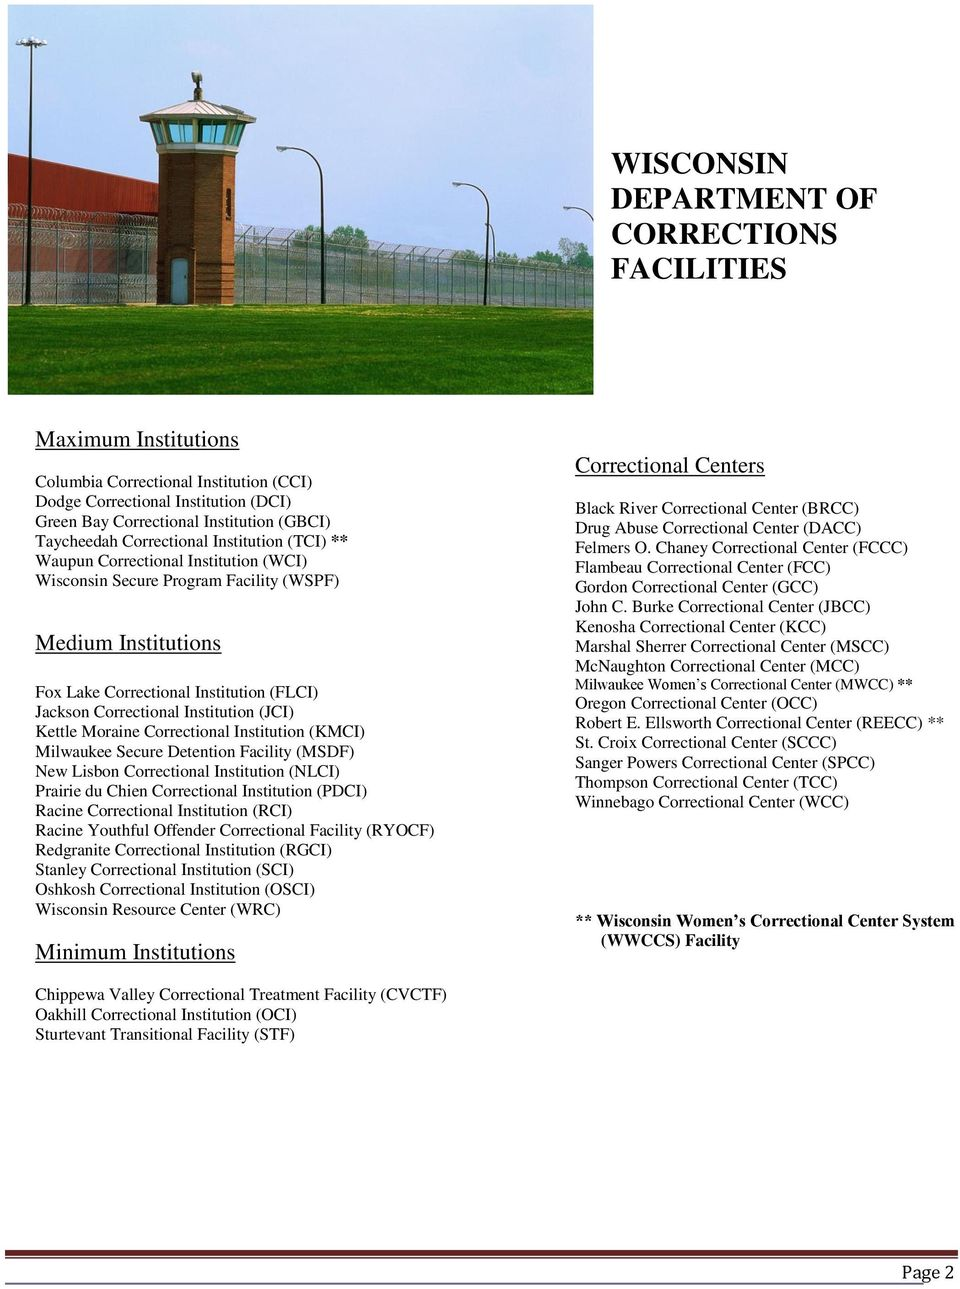 Institution (JCI) Kettle Moraine Correctional Institution (KMCI) Milwaukee Secure Detention Facility (MSDF) New Lisbon Correctional Institution (NLCI) Prairie du Chien Correctional Institution (PDCI)